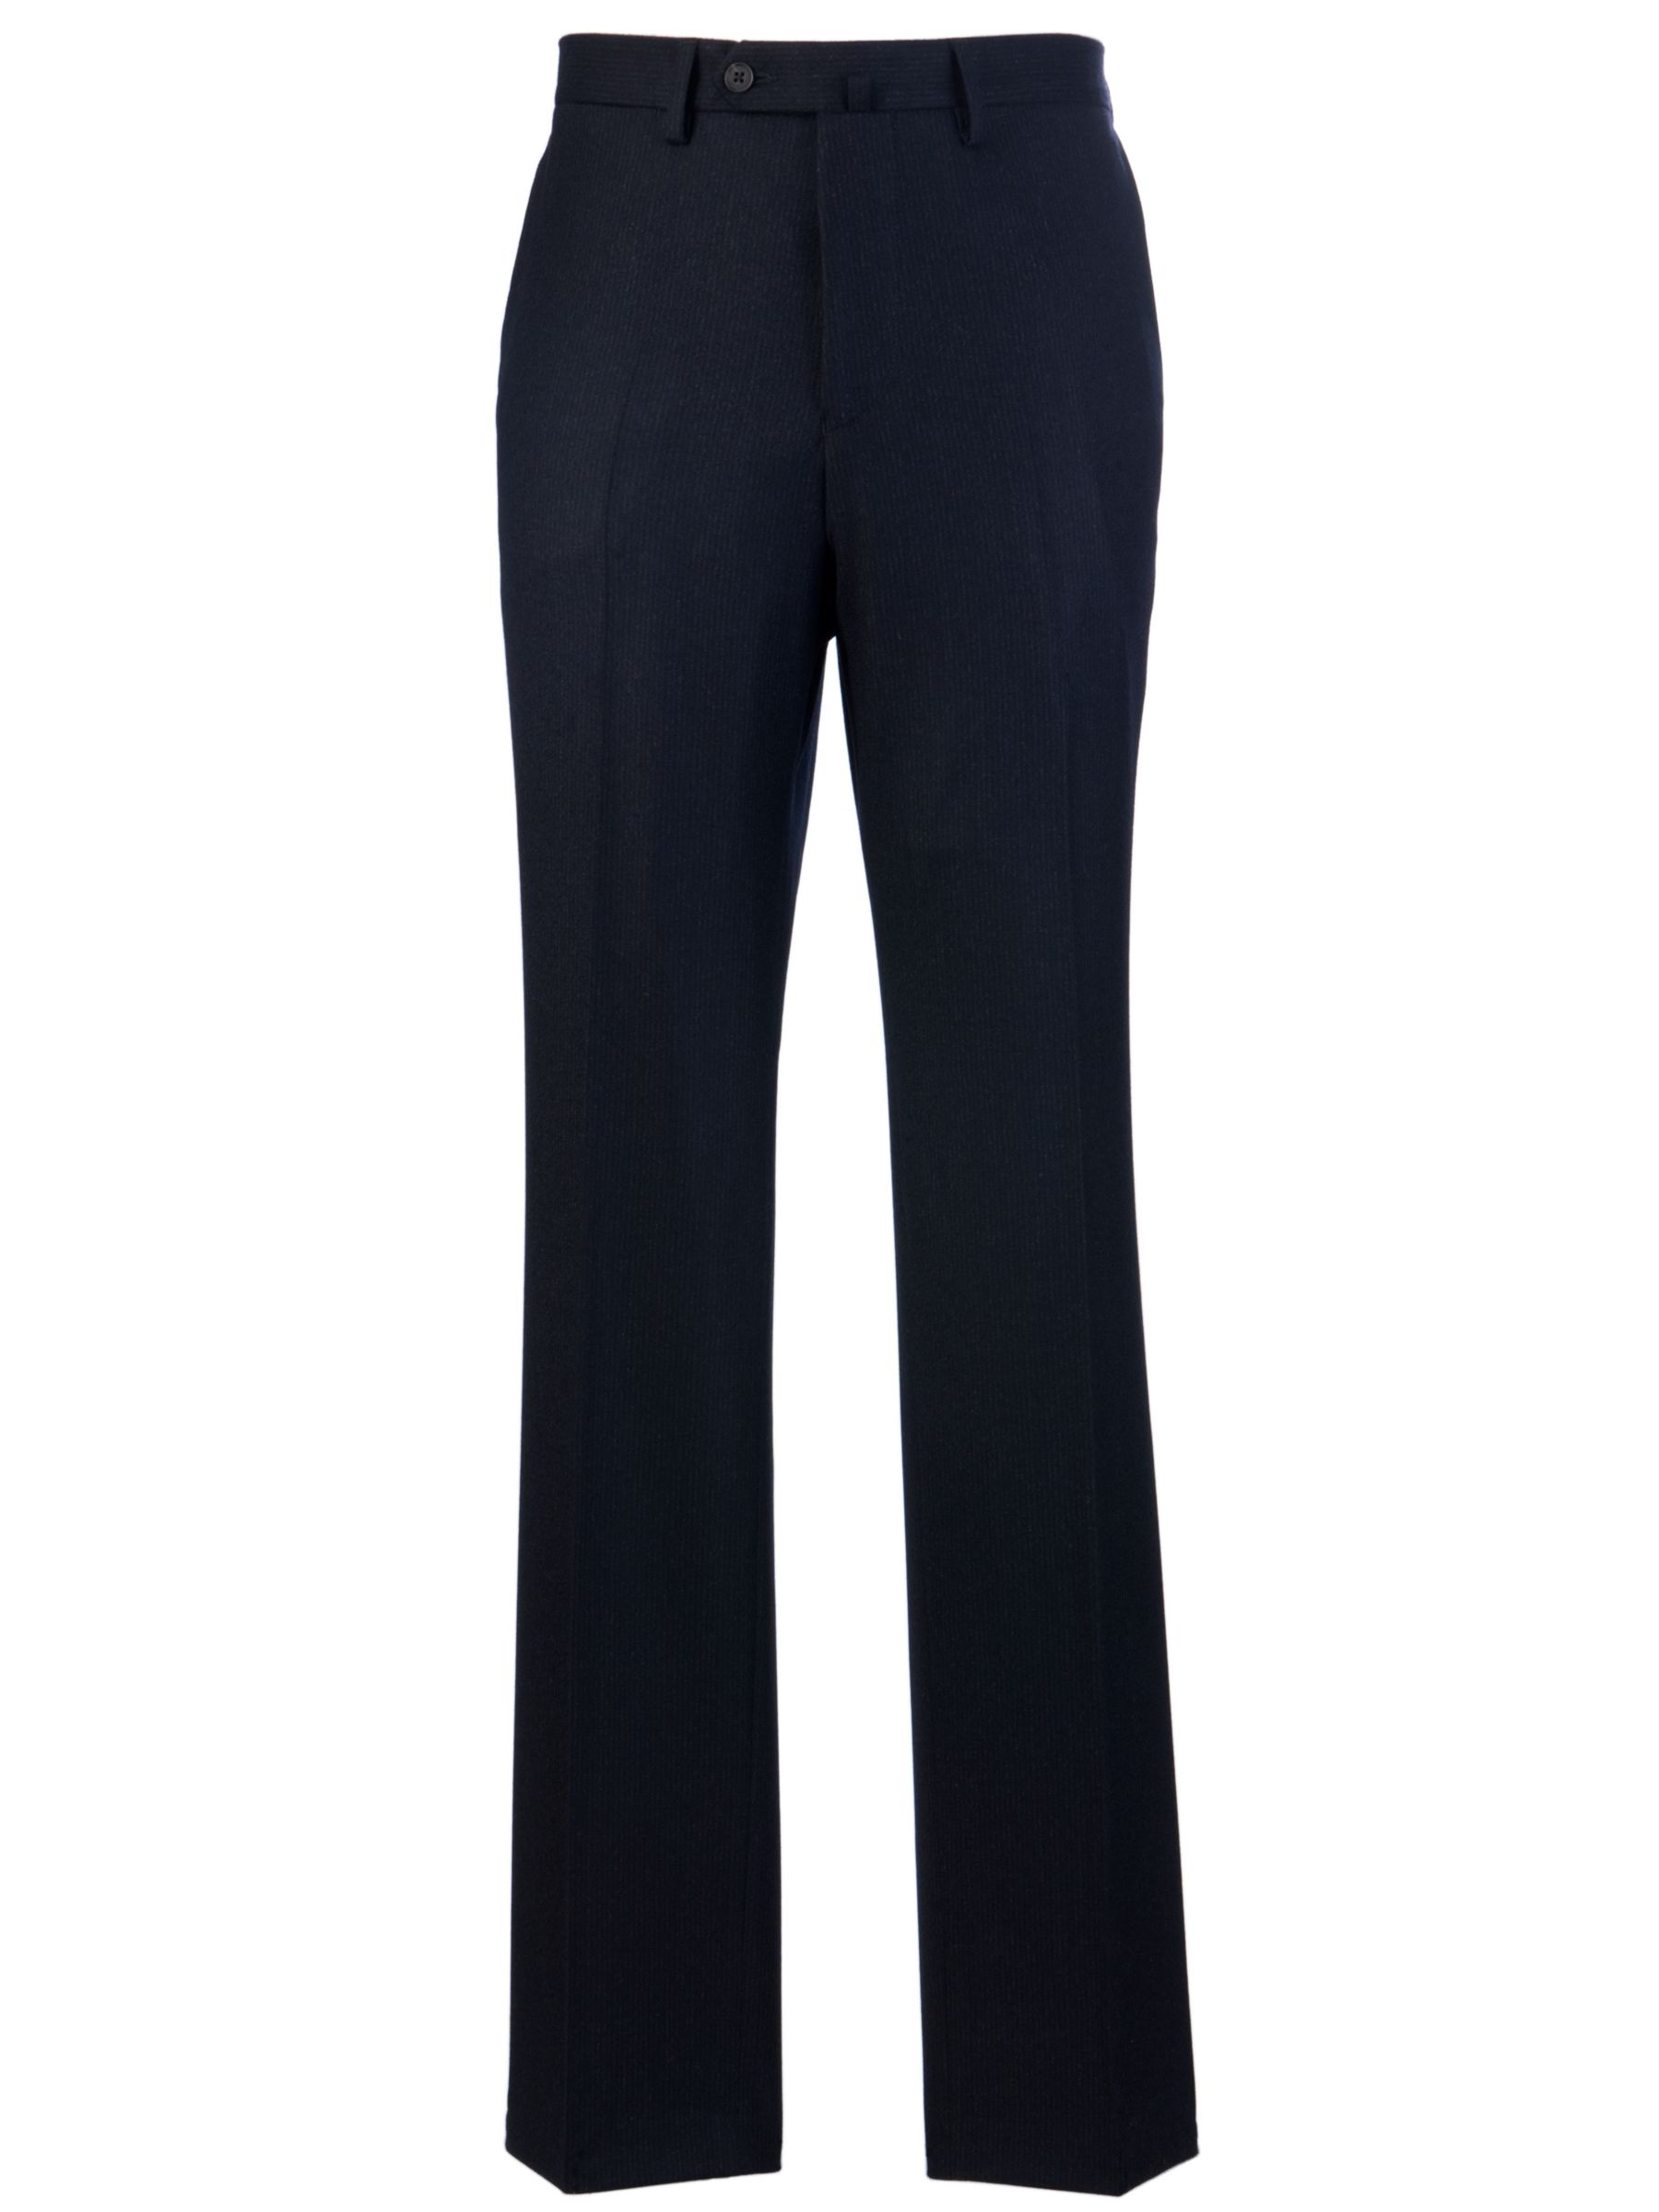 Hackett London Shadow Stripe Suit Trousers, Navy at JohnLewis